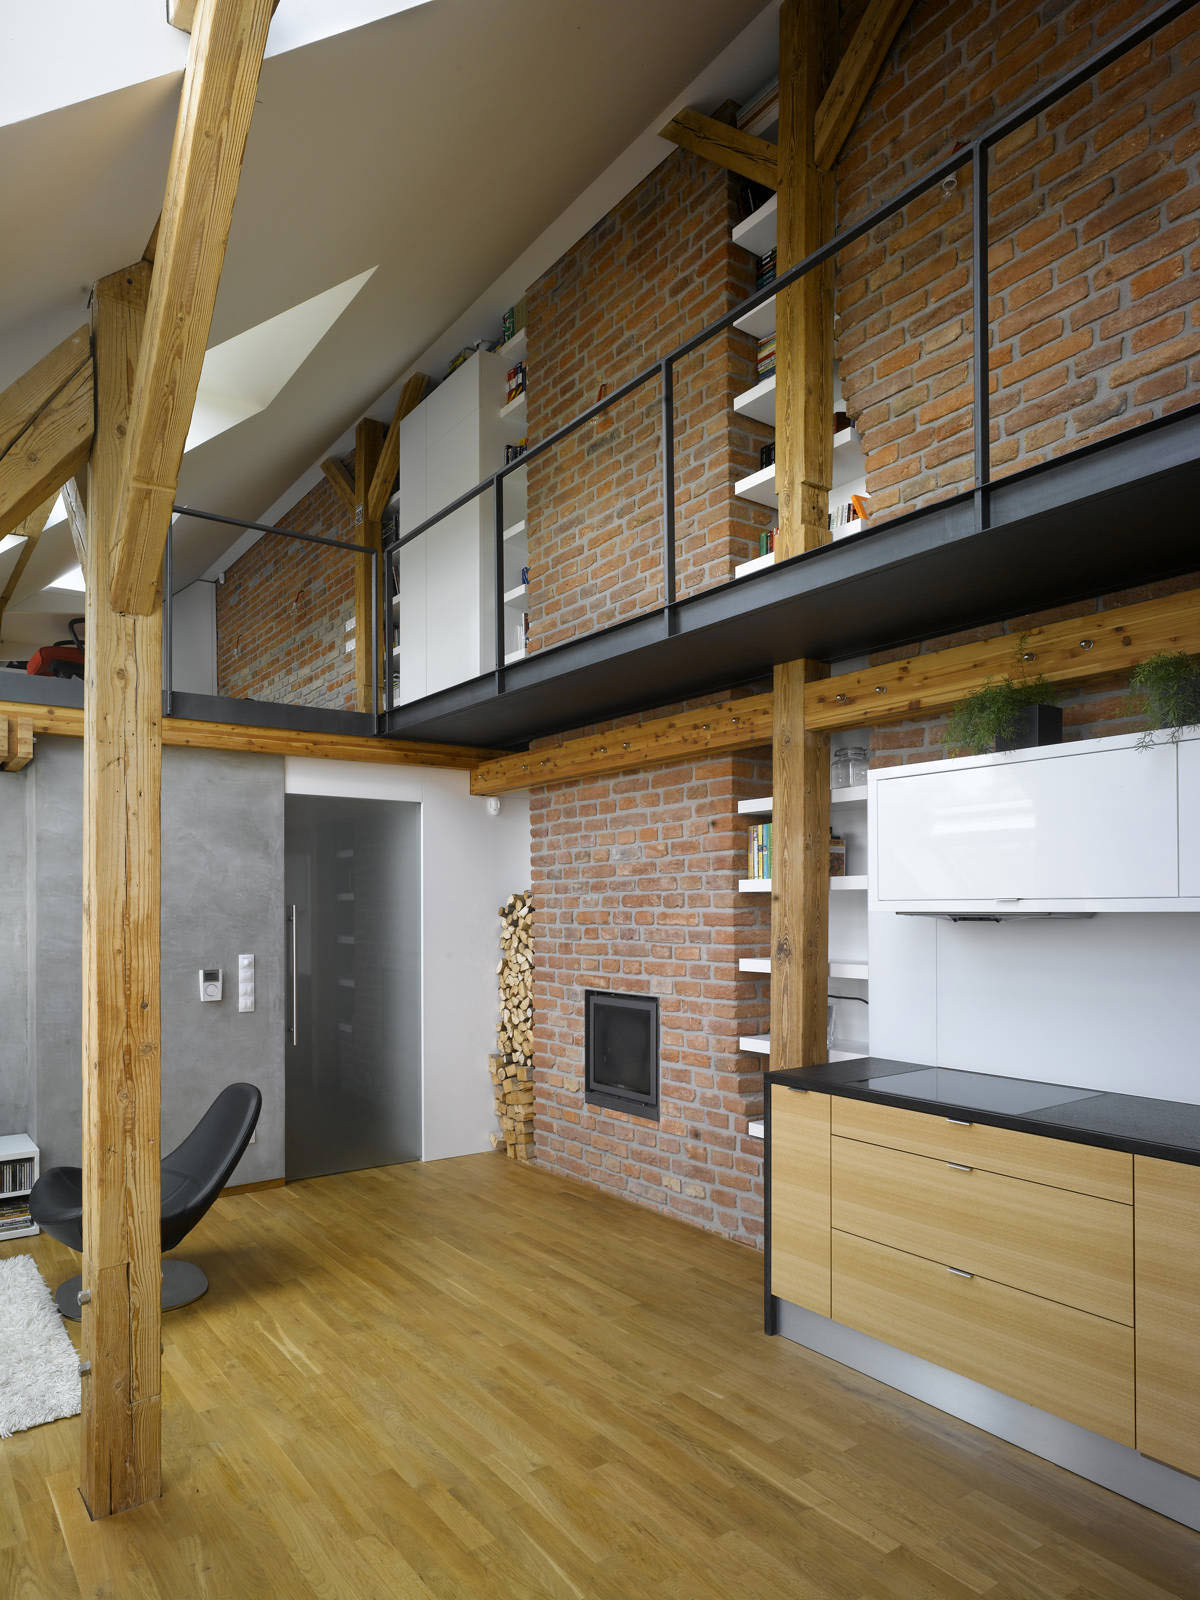 Small attic loft apartment in prague idesignarch Small loft apartment design